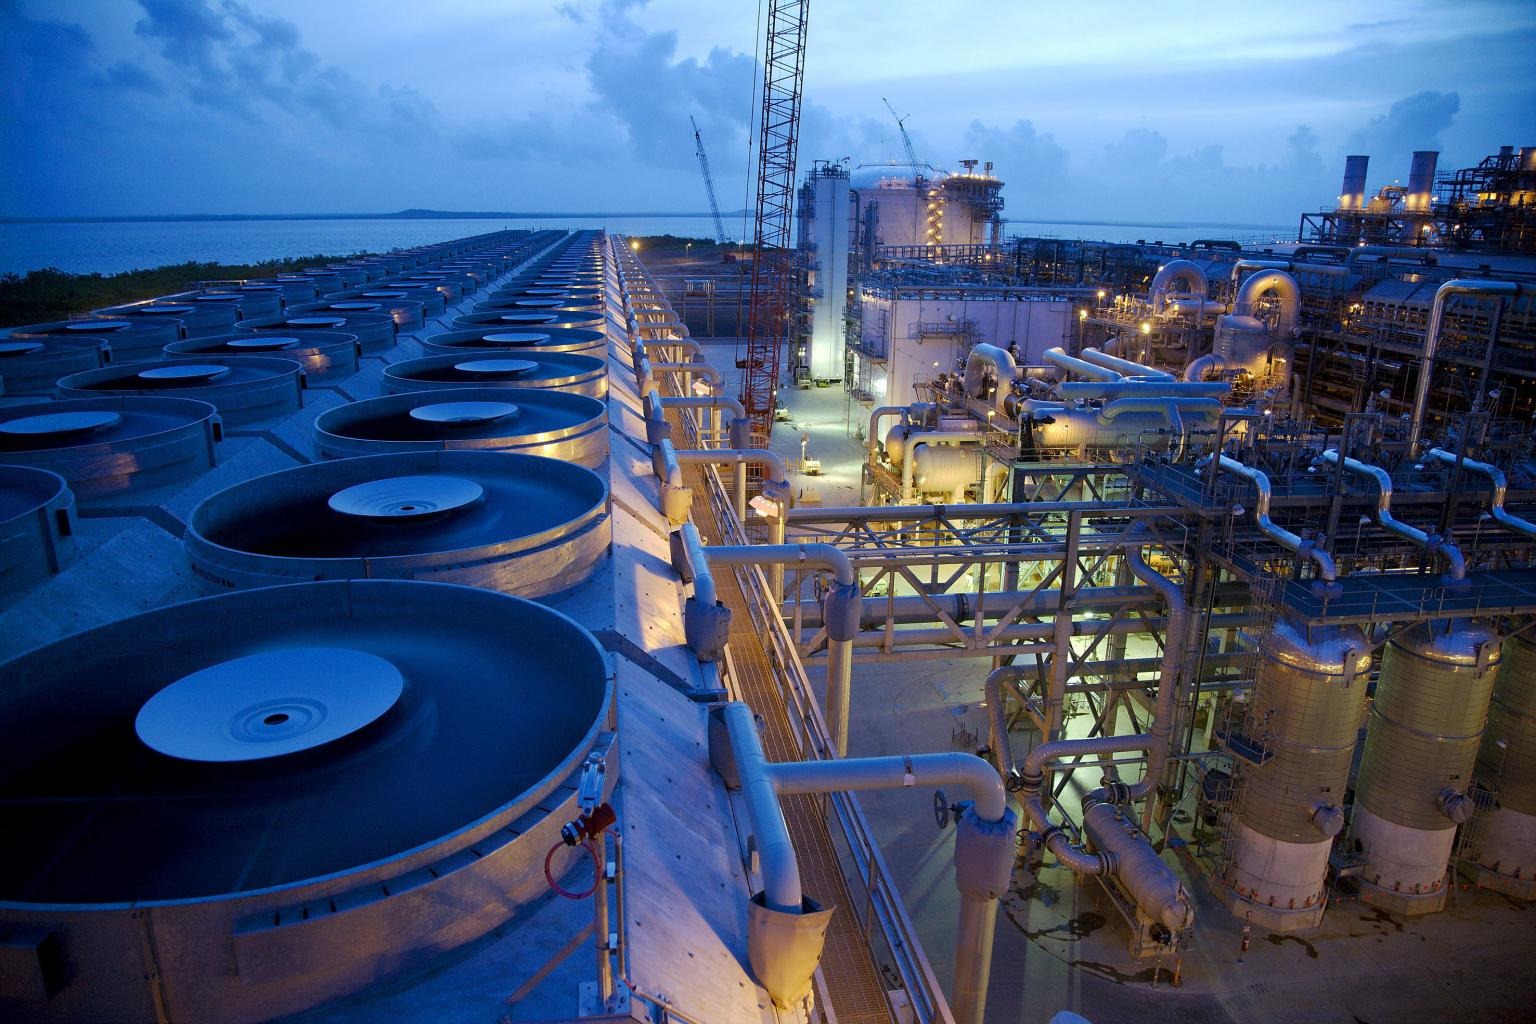 Any LNG facility requires careful assessment of the risks to protect life, property and the environment